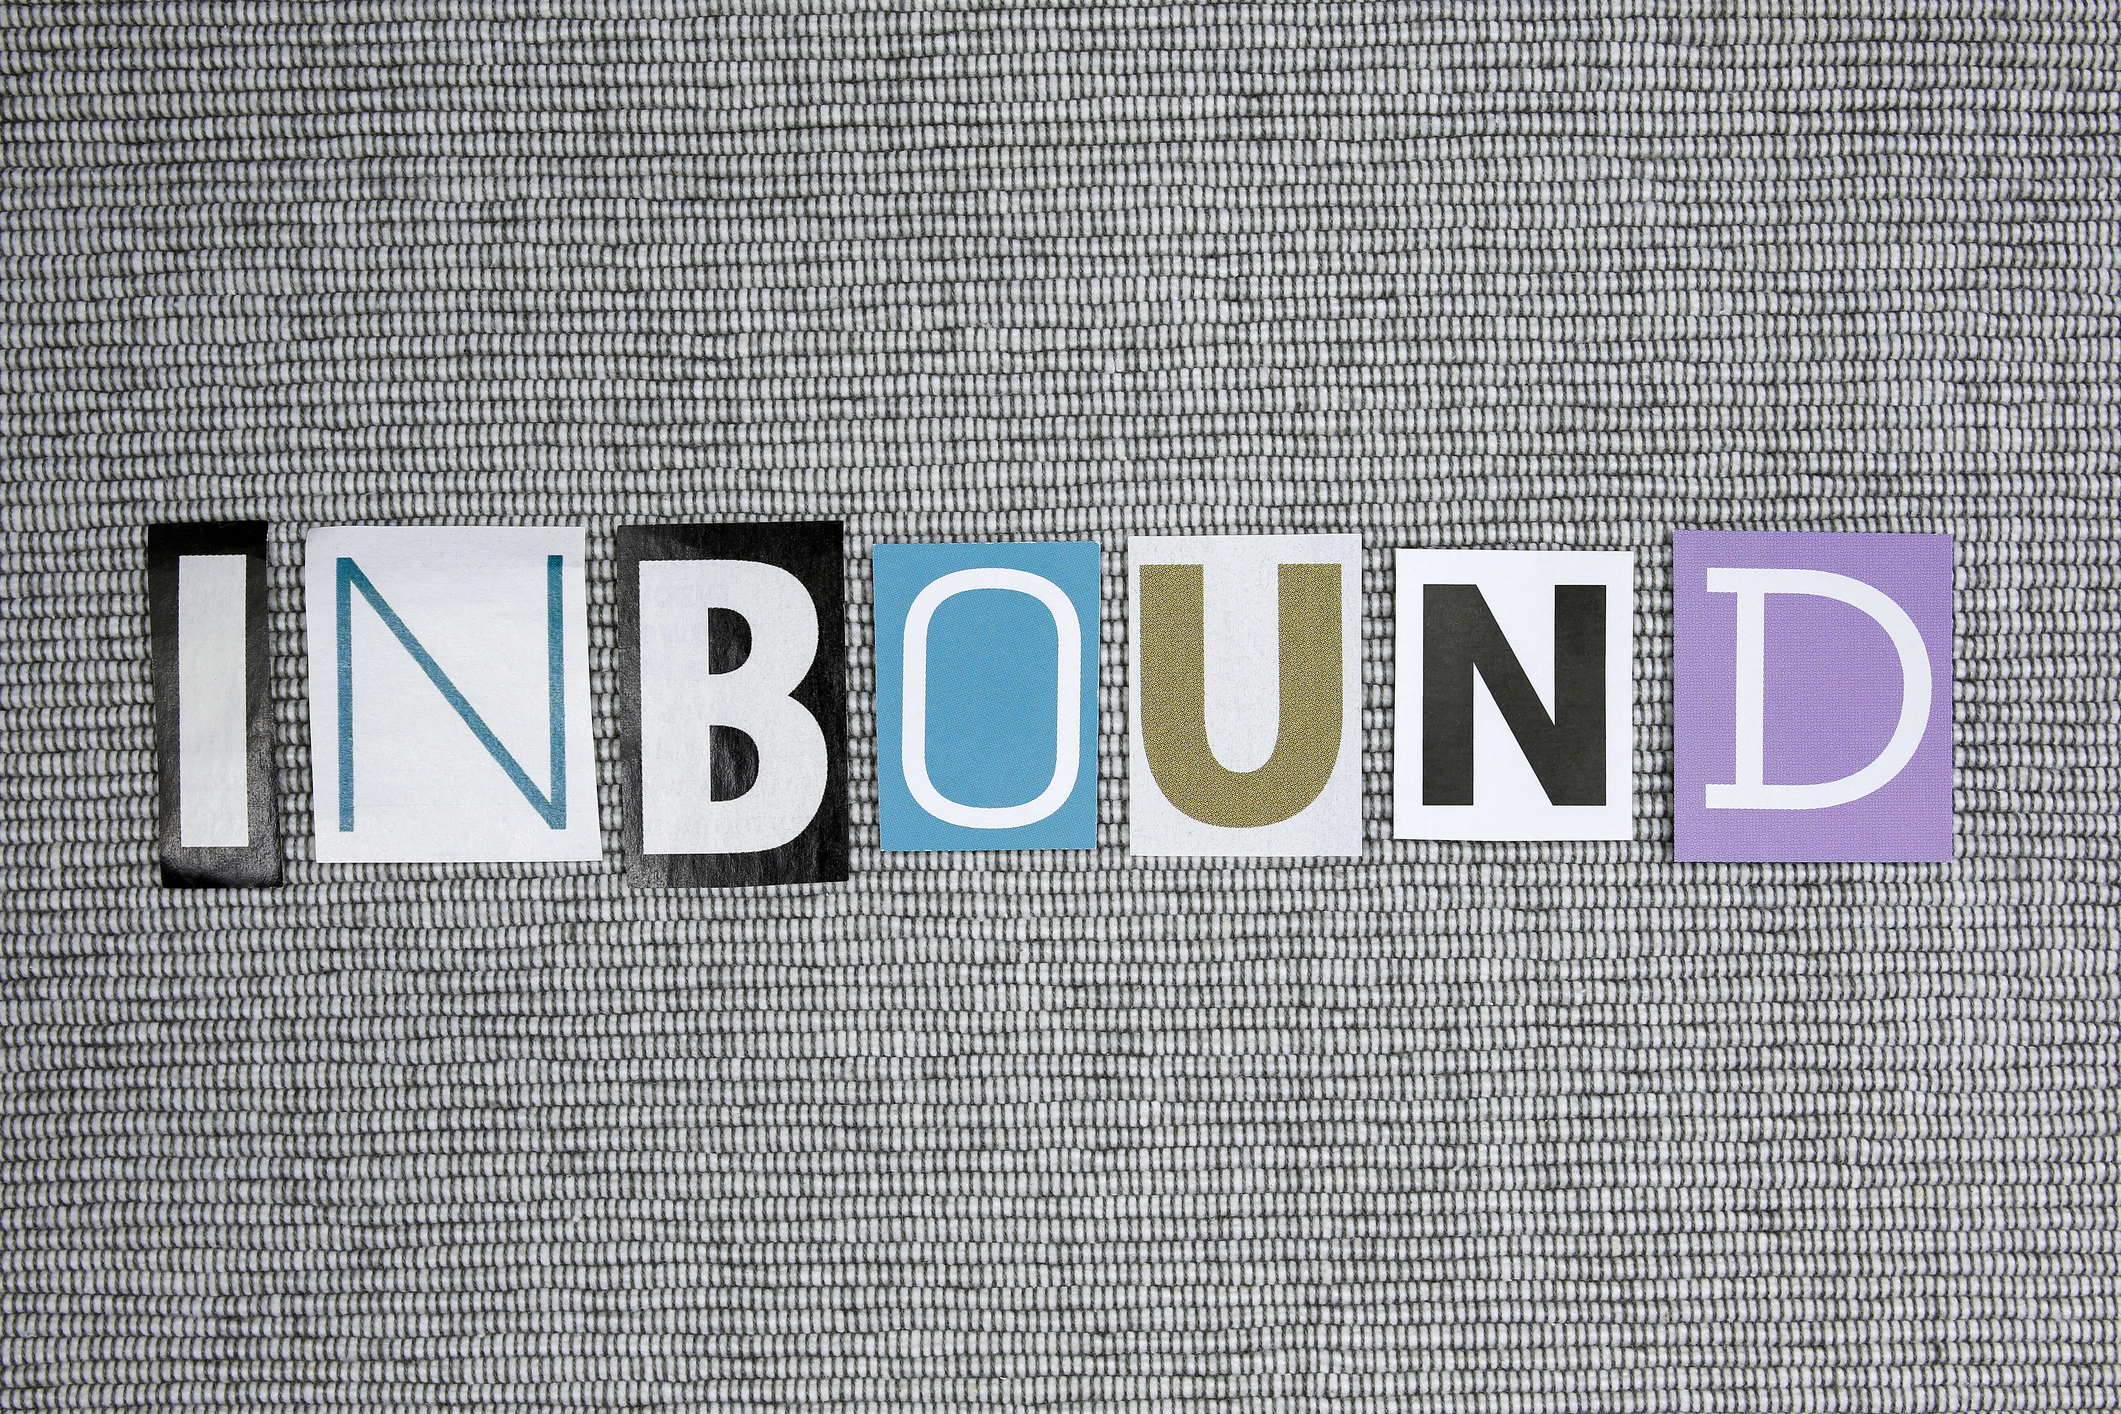 Image with letters spelling the word 'inbound'